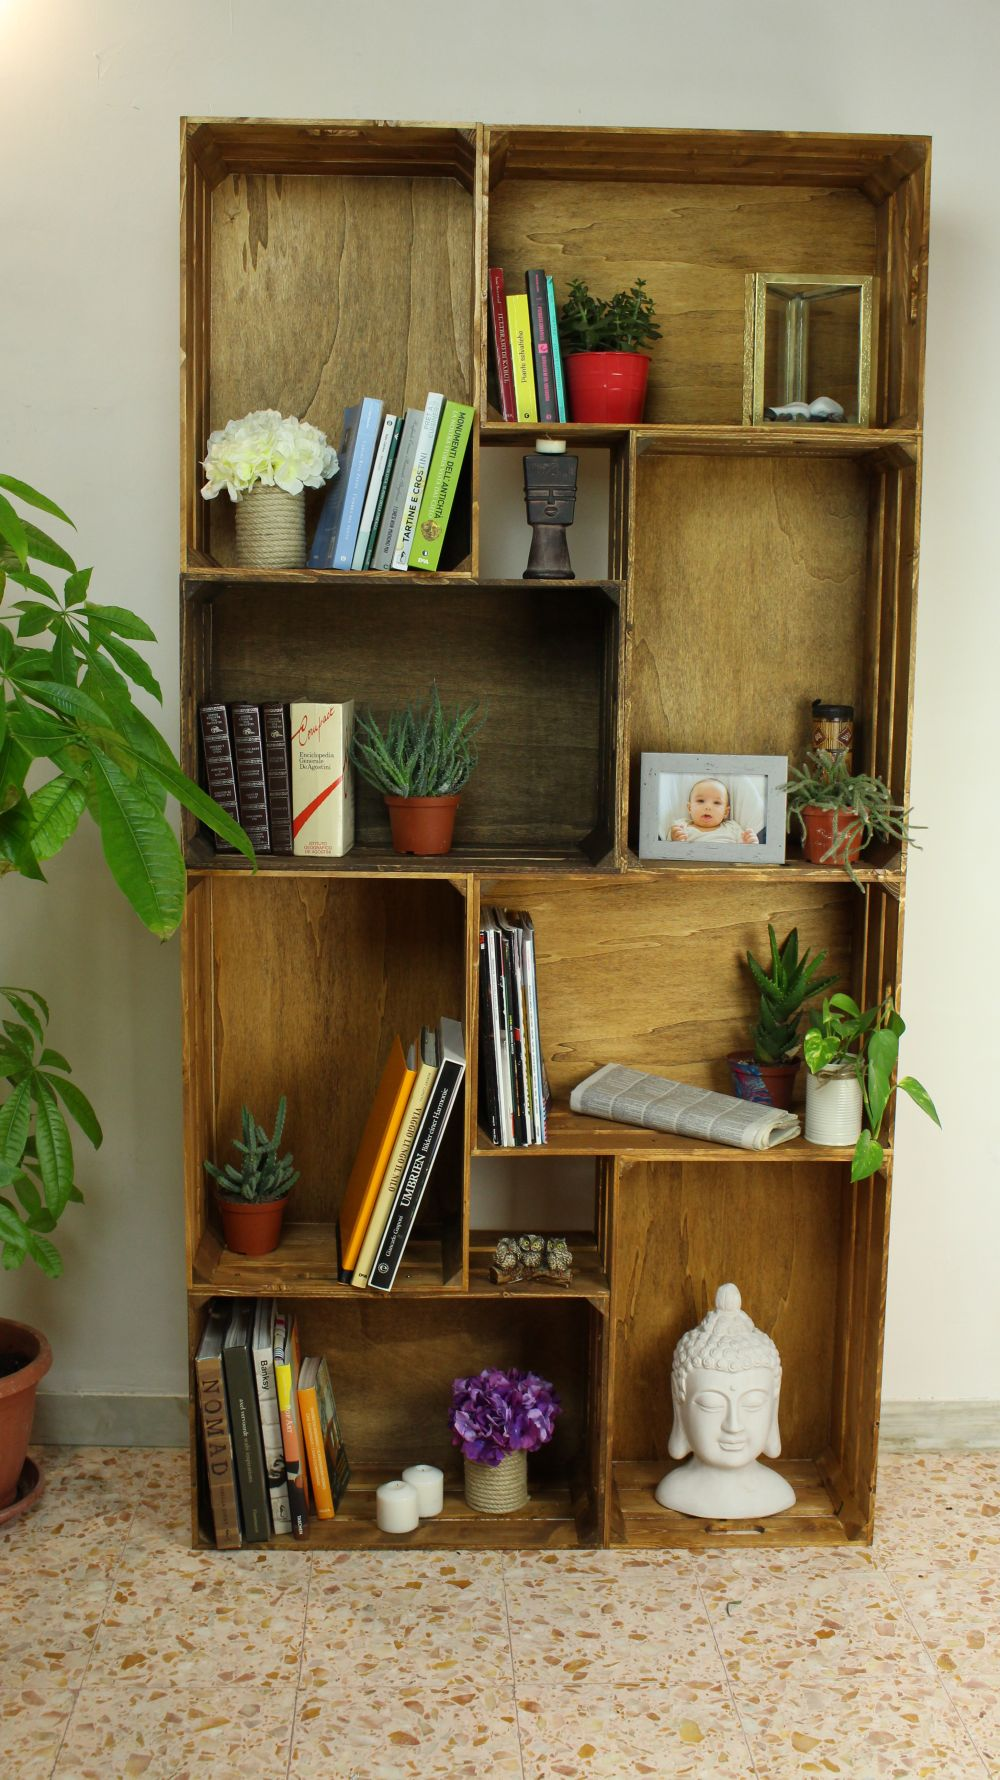 10 bookshelf ideas with lots of flair and character - 10 Bookshelf Ideas With Lots Of Flair And Character